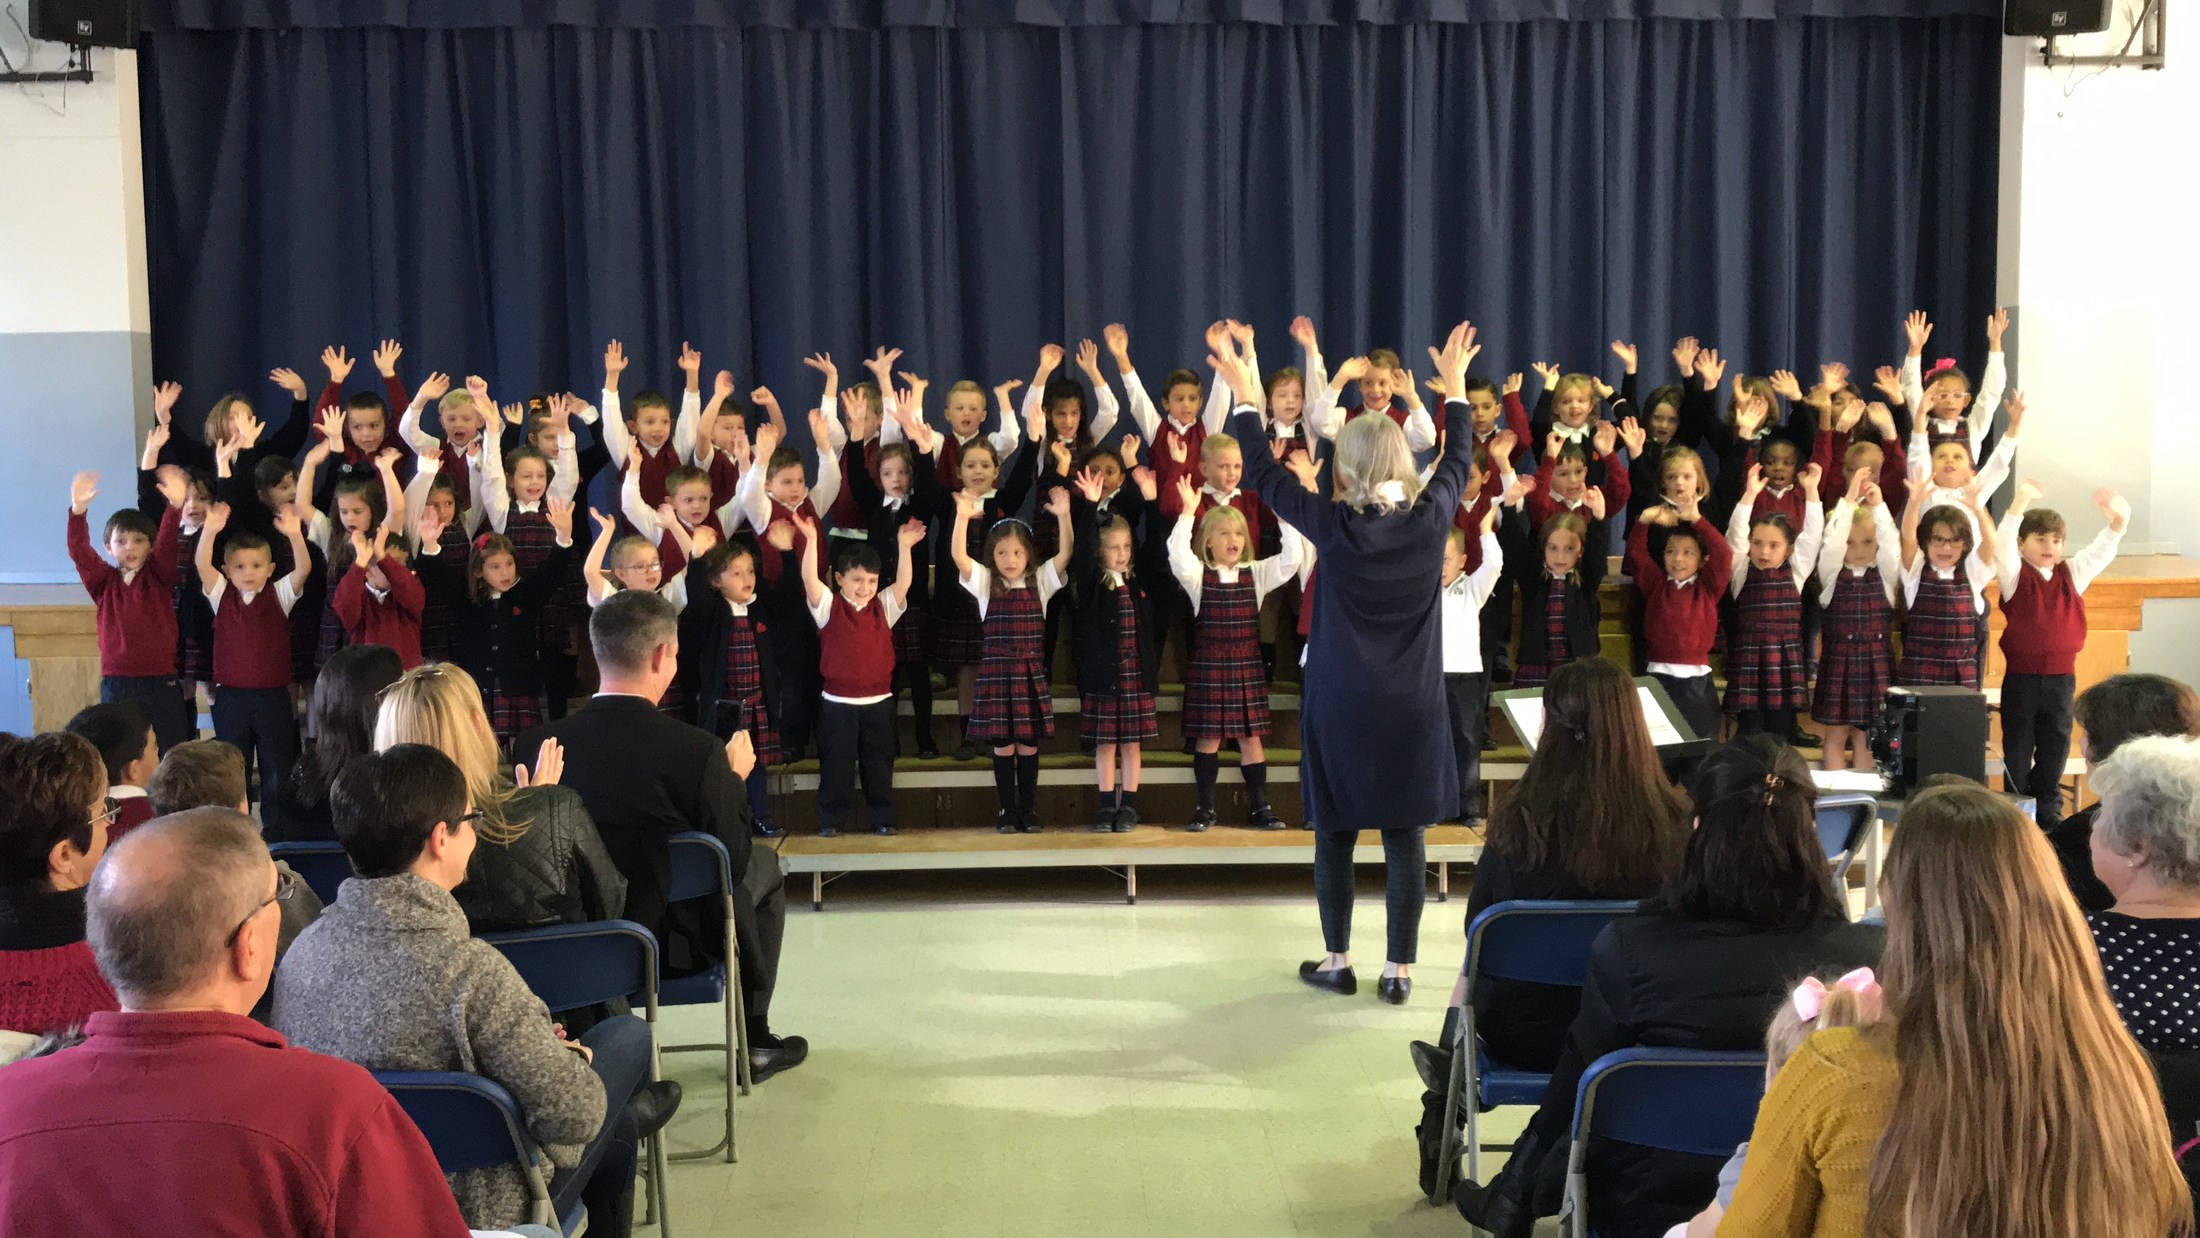 Students sing during a concert